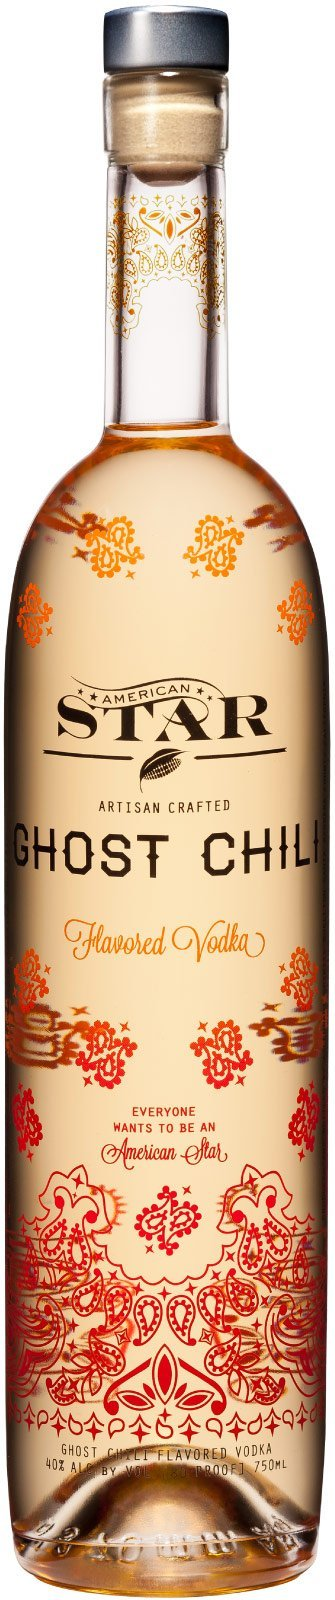 American Star Ghost Chili Vodka 750ml